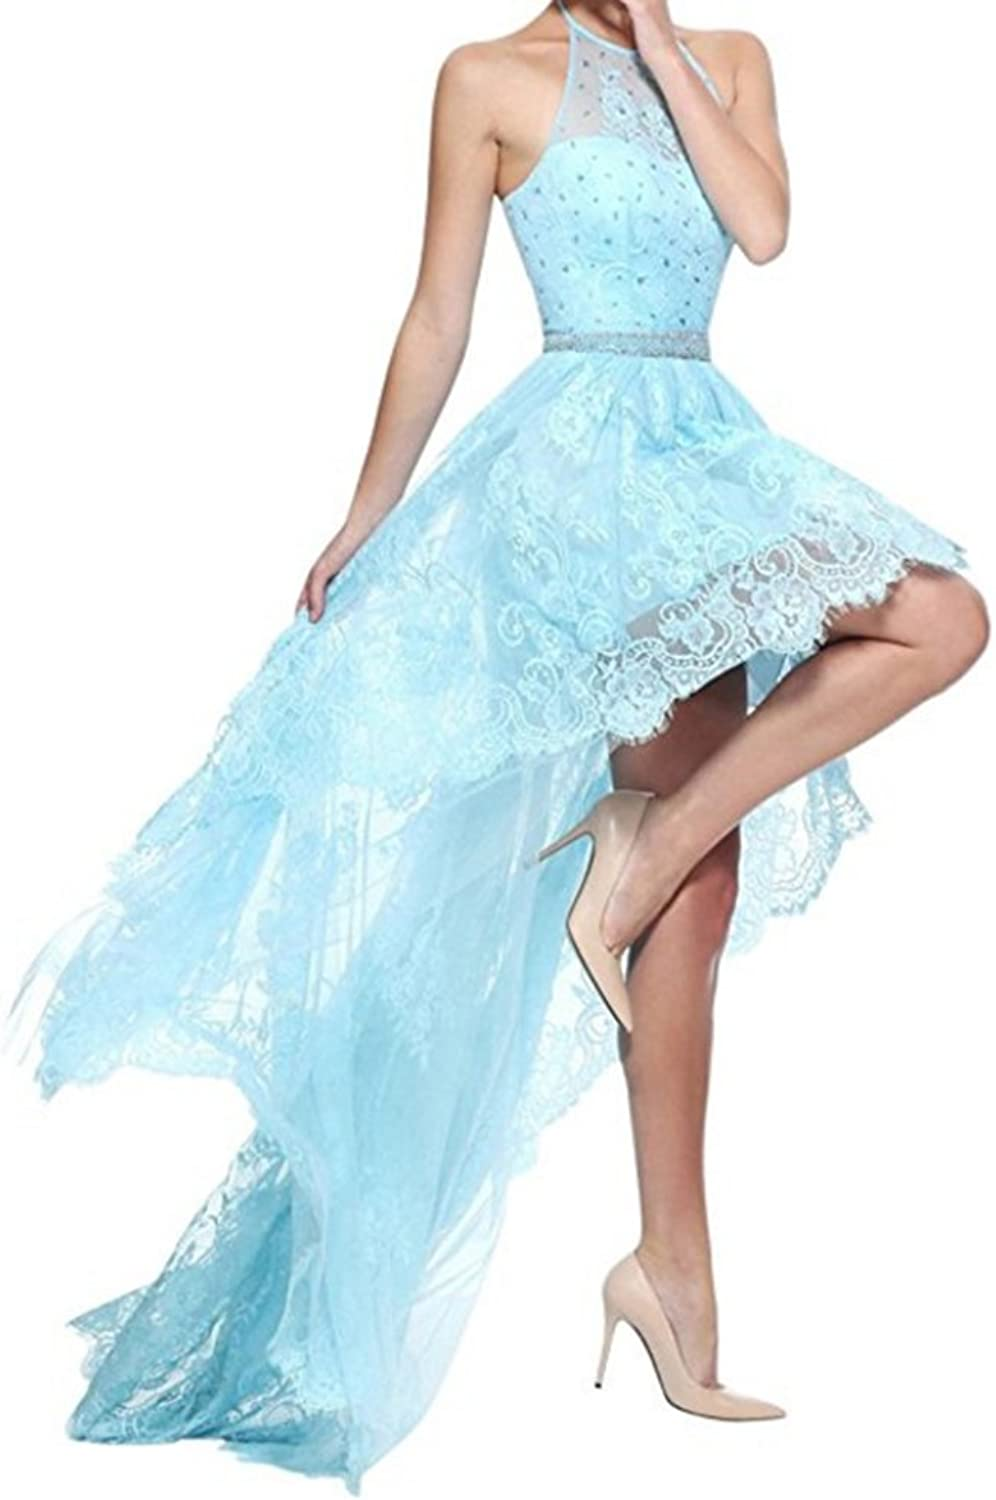 Honeydress Women's High Low Halter Neck Floral Lace Beading Waist Party Dress